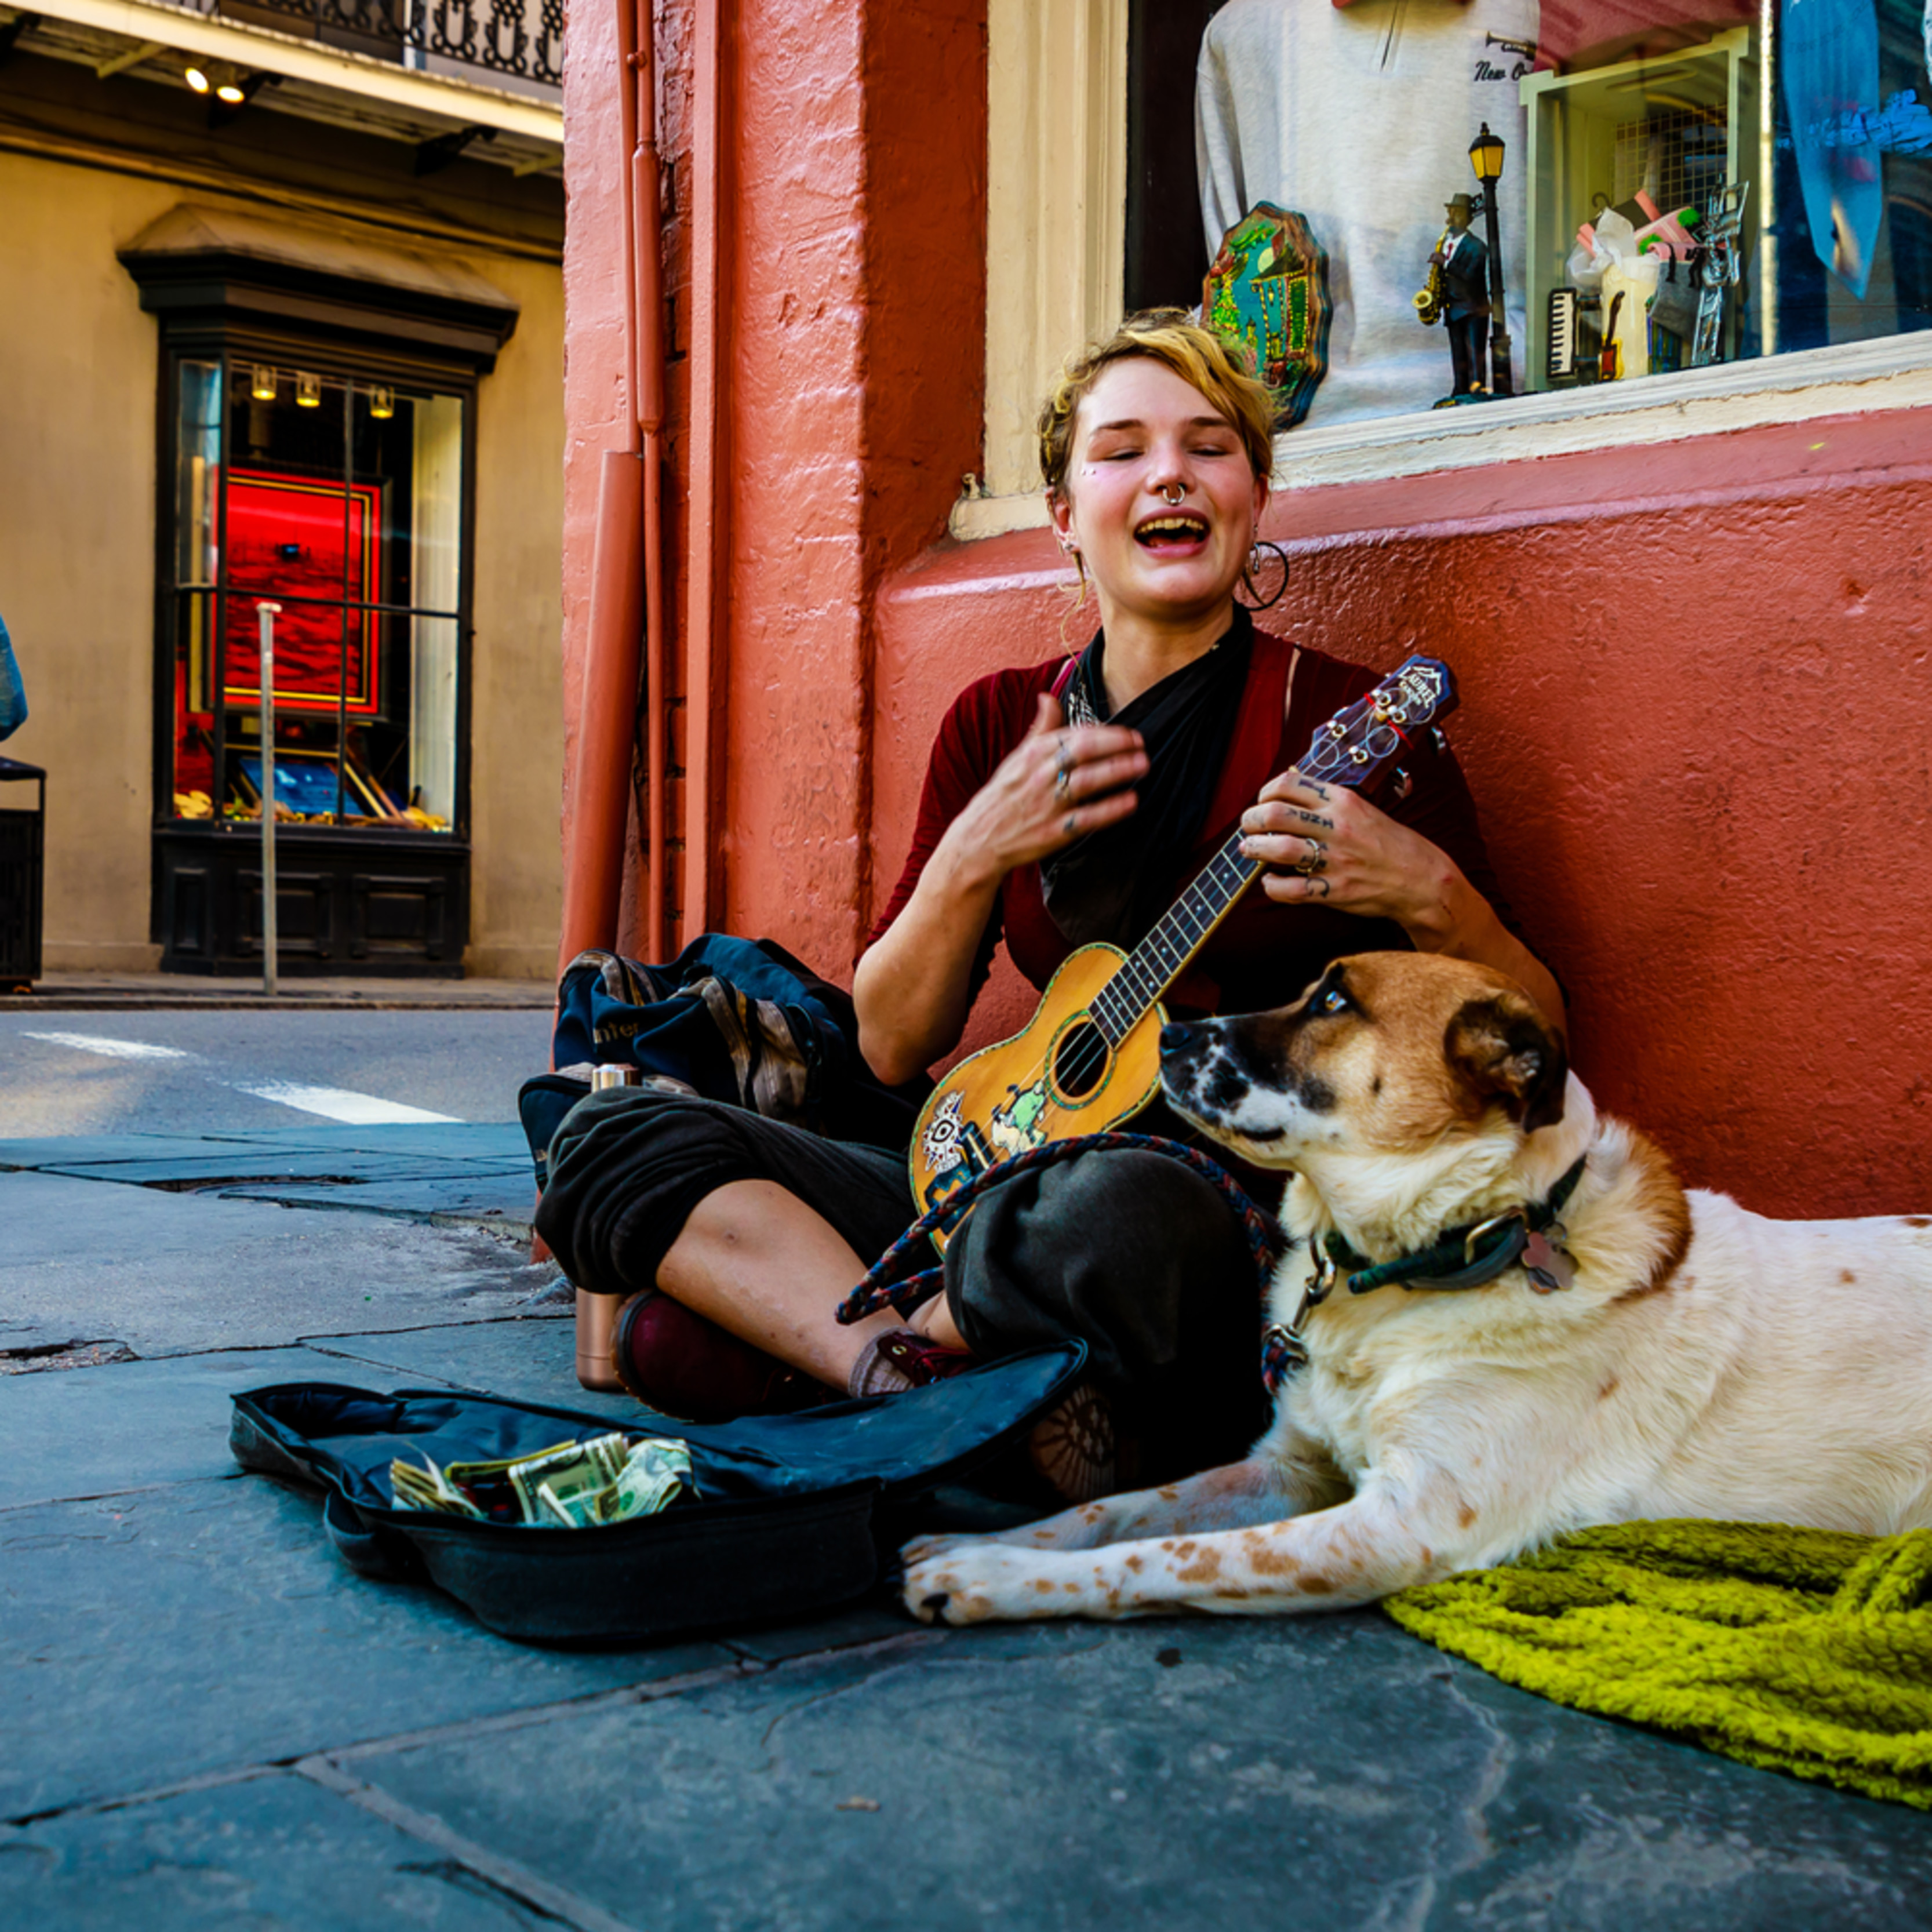 Sidewalk performer and dog new orleans 2017 d2jzhy